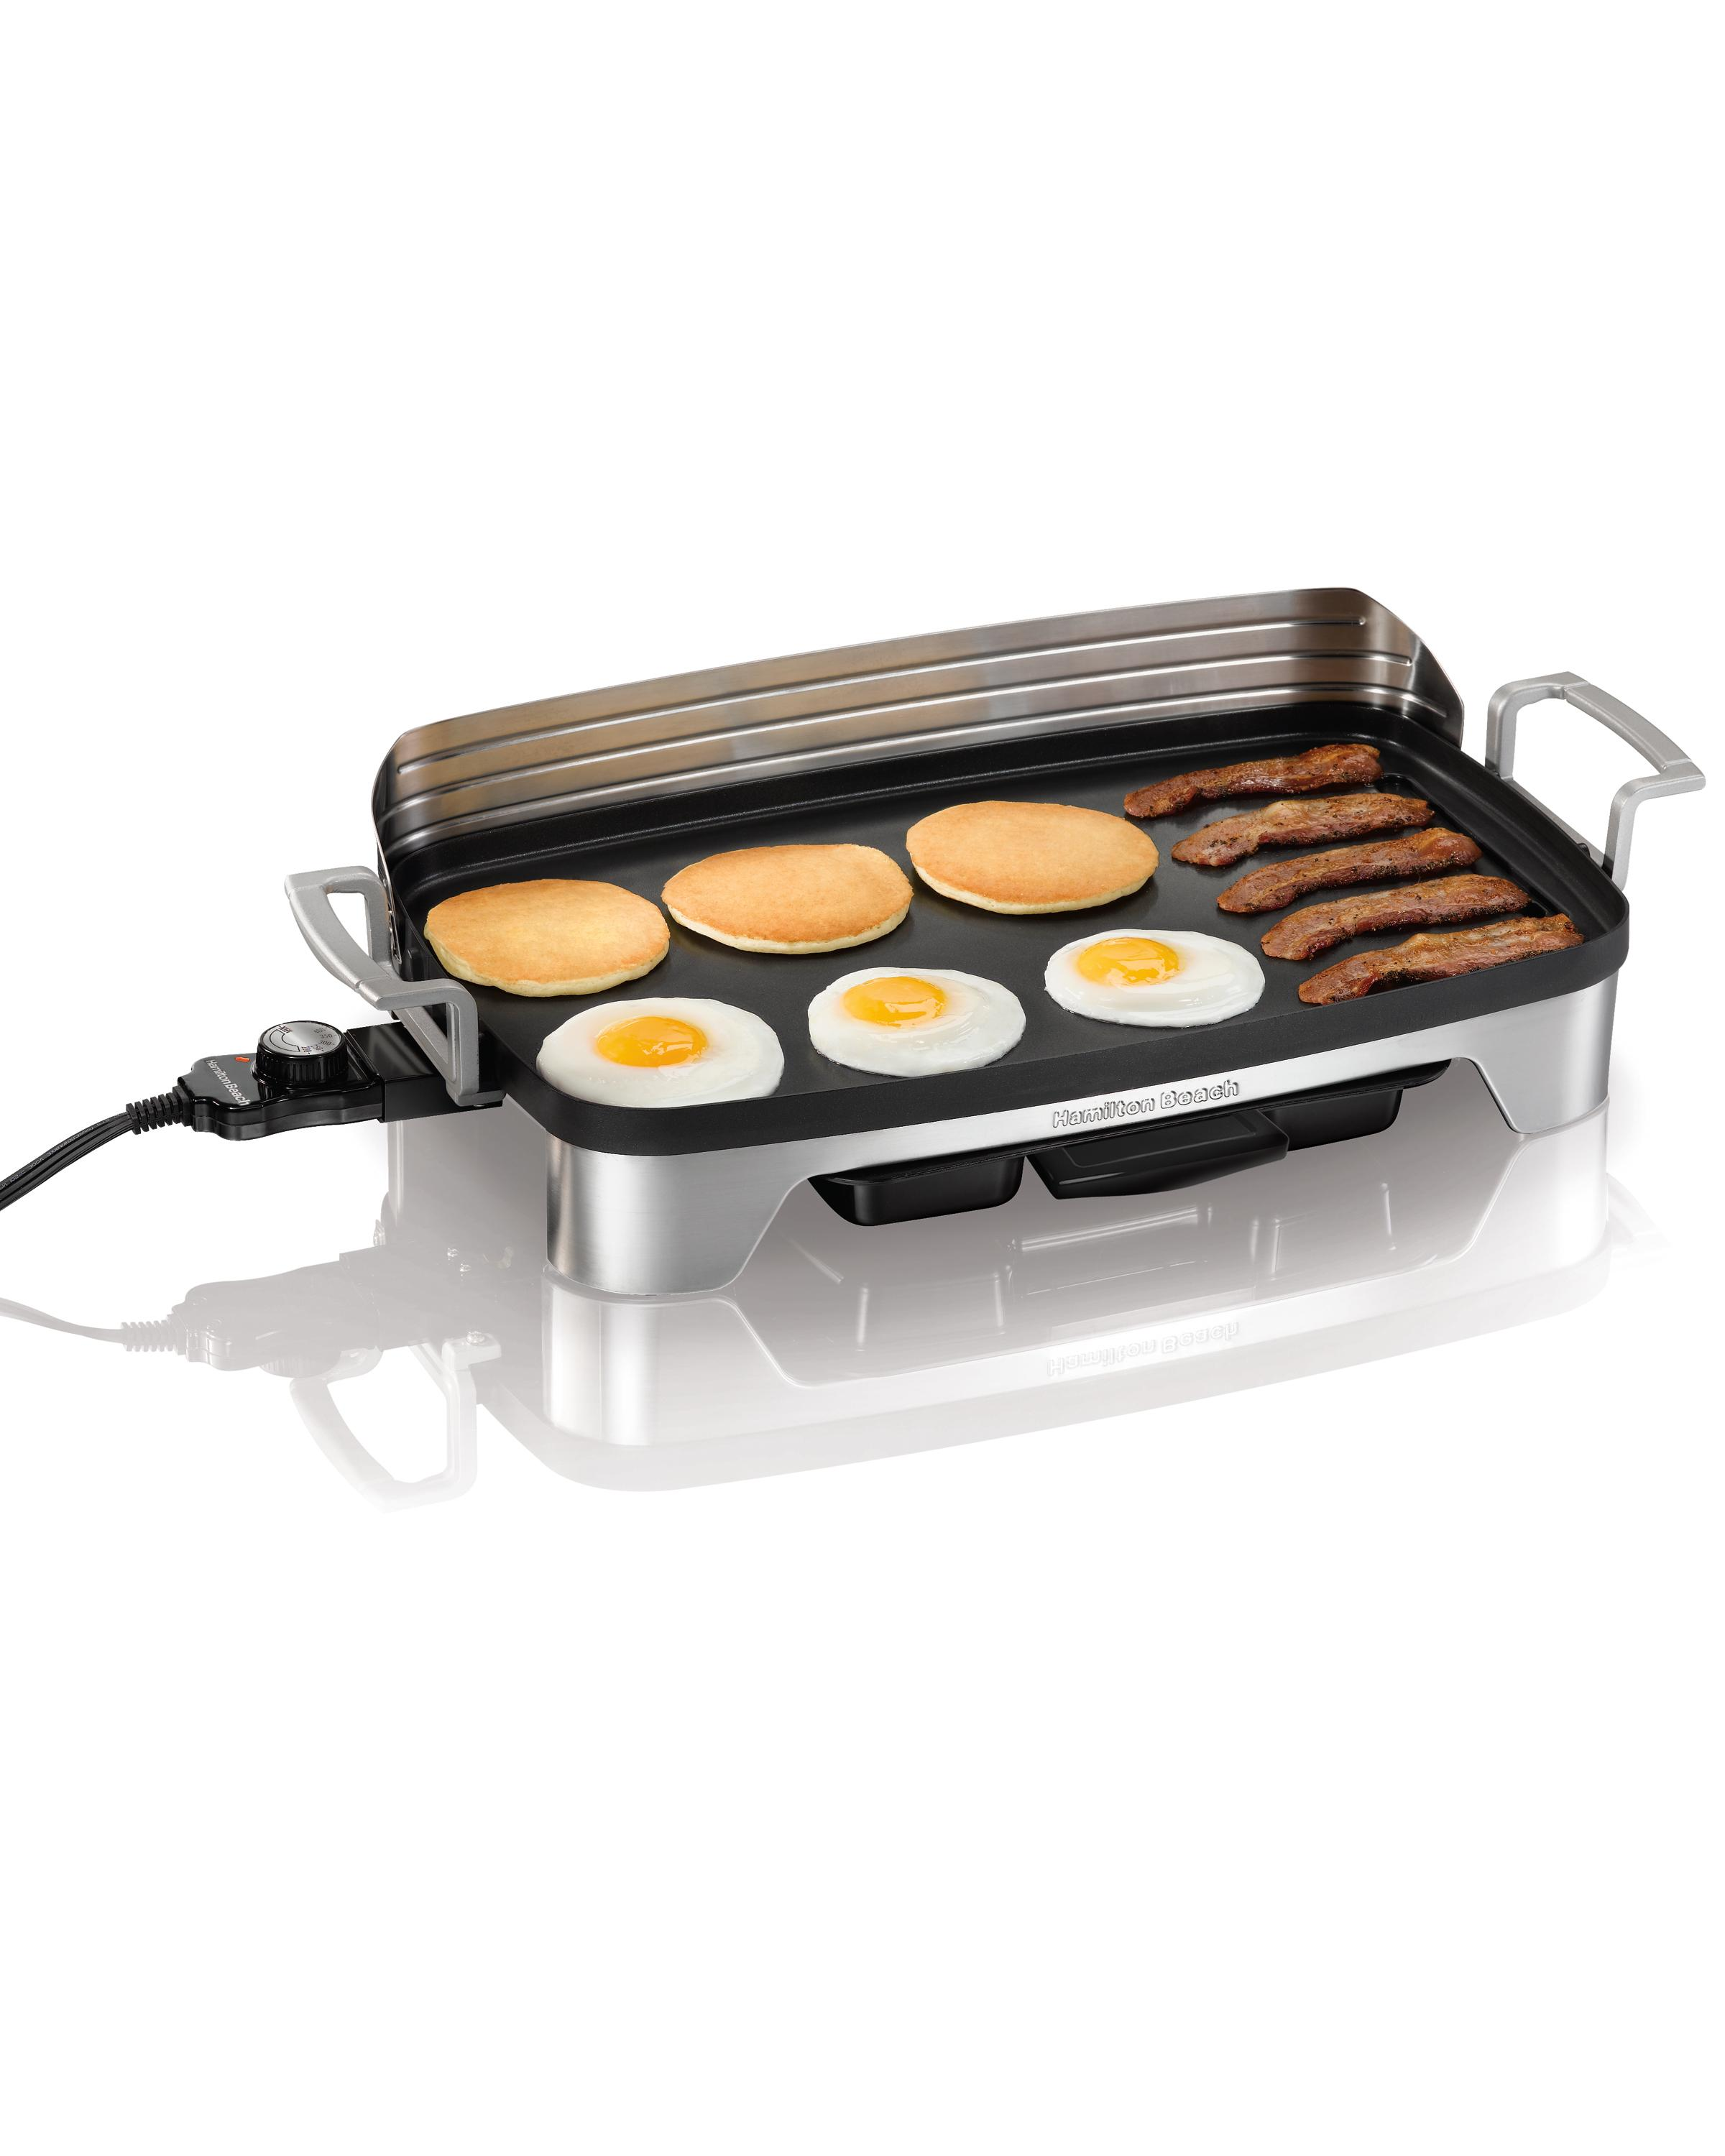 Electric Grill Griddle ~ Large electric griddle grill non stick cookware food